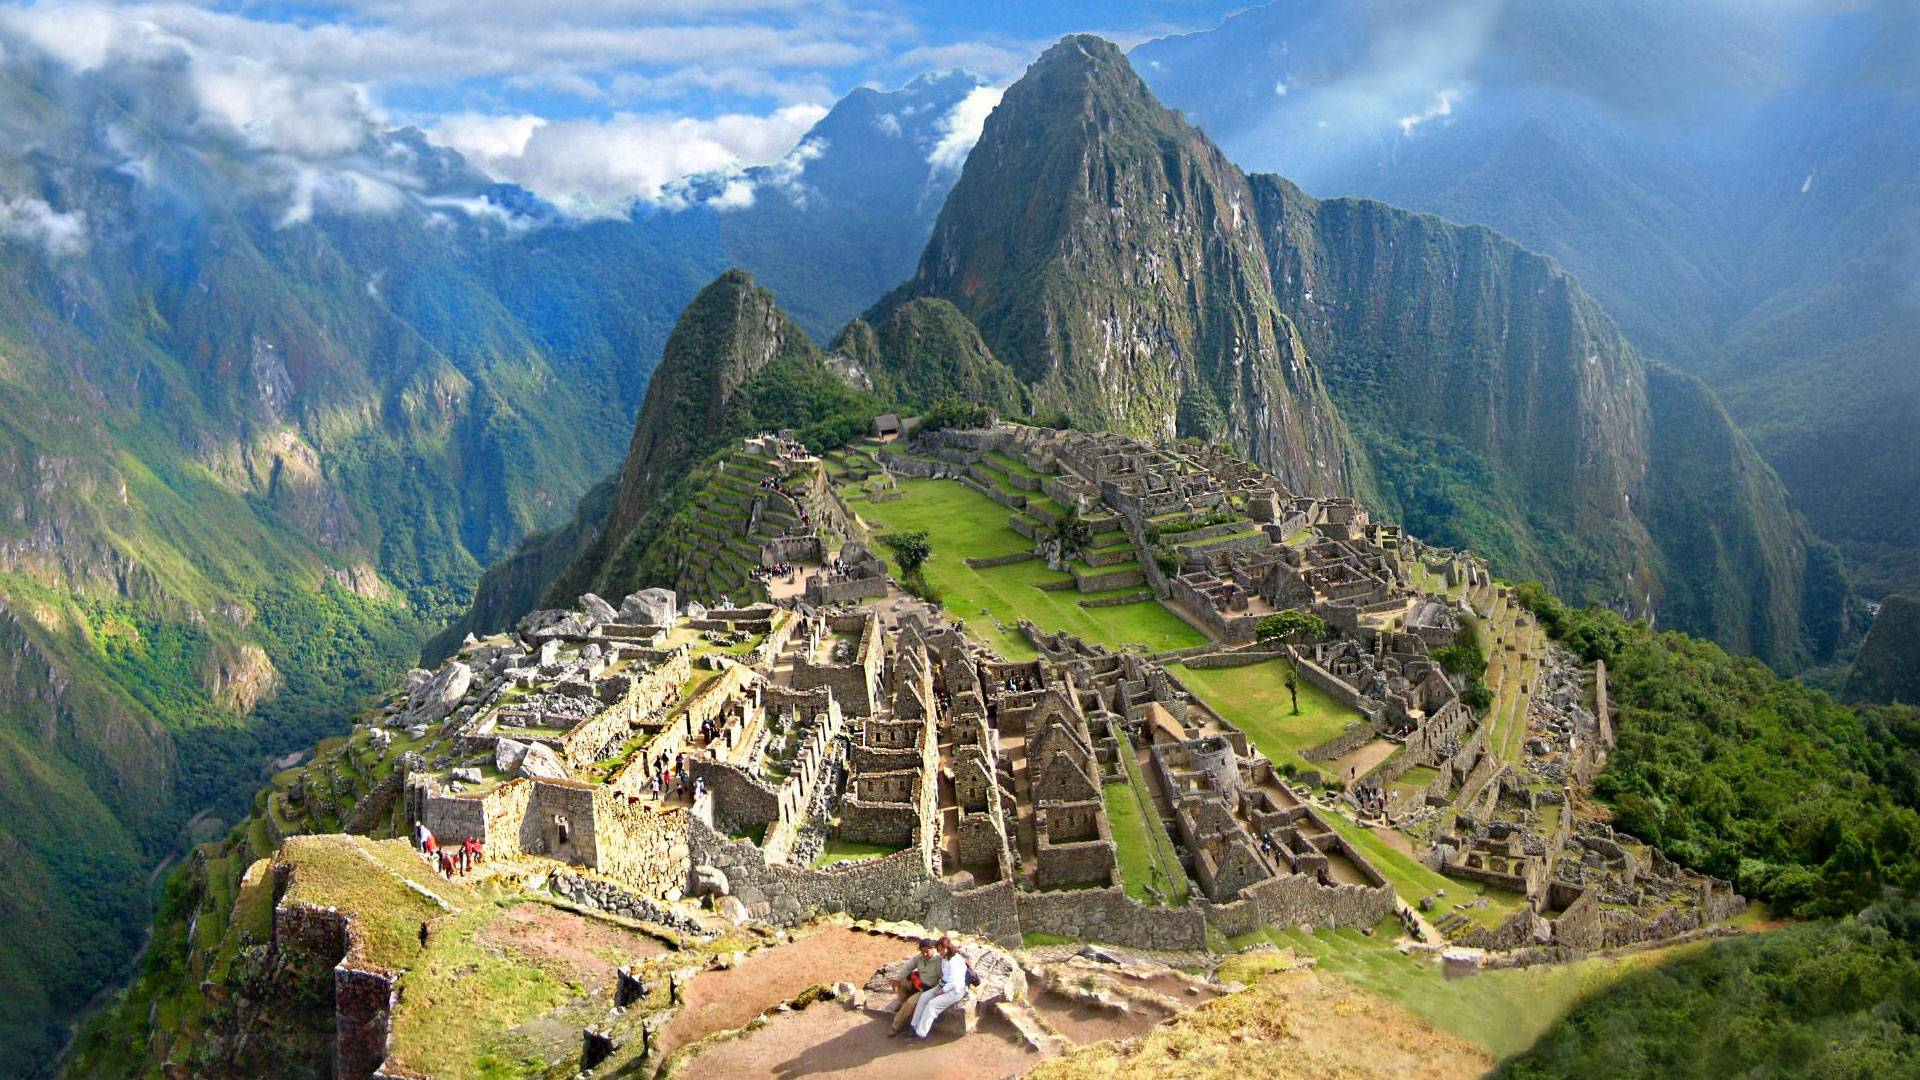 Waking up to Machu Picchu